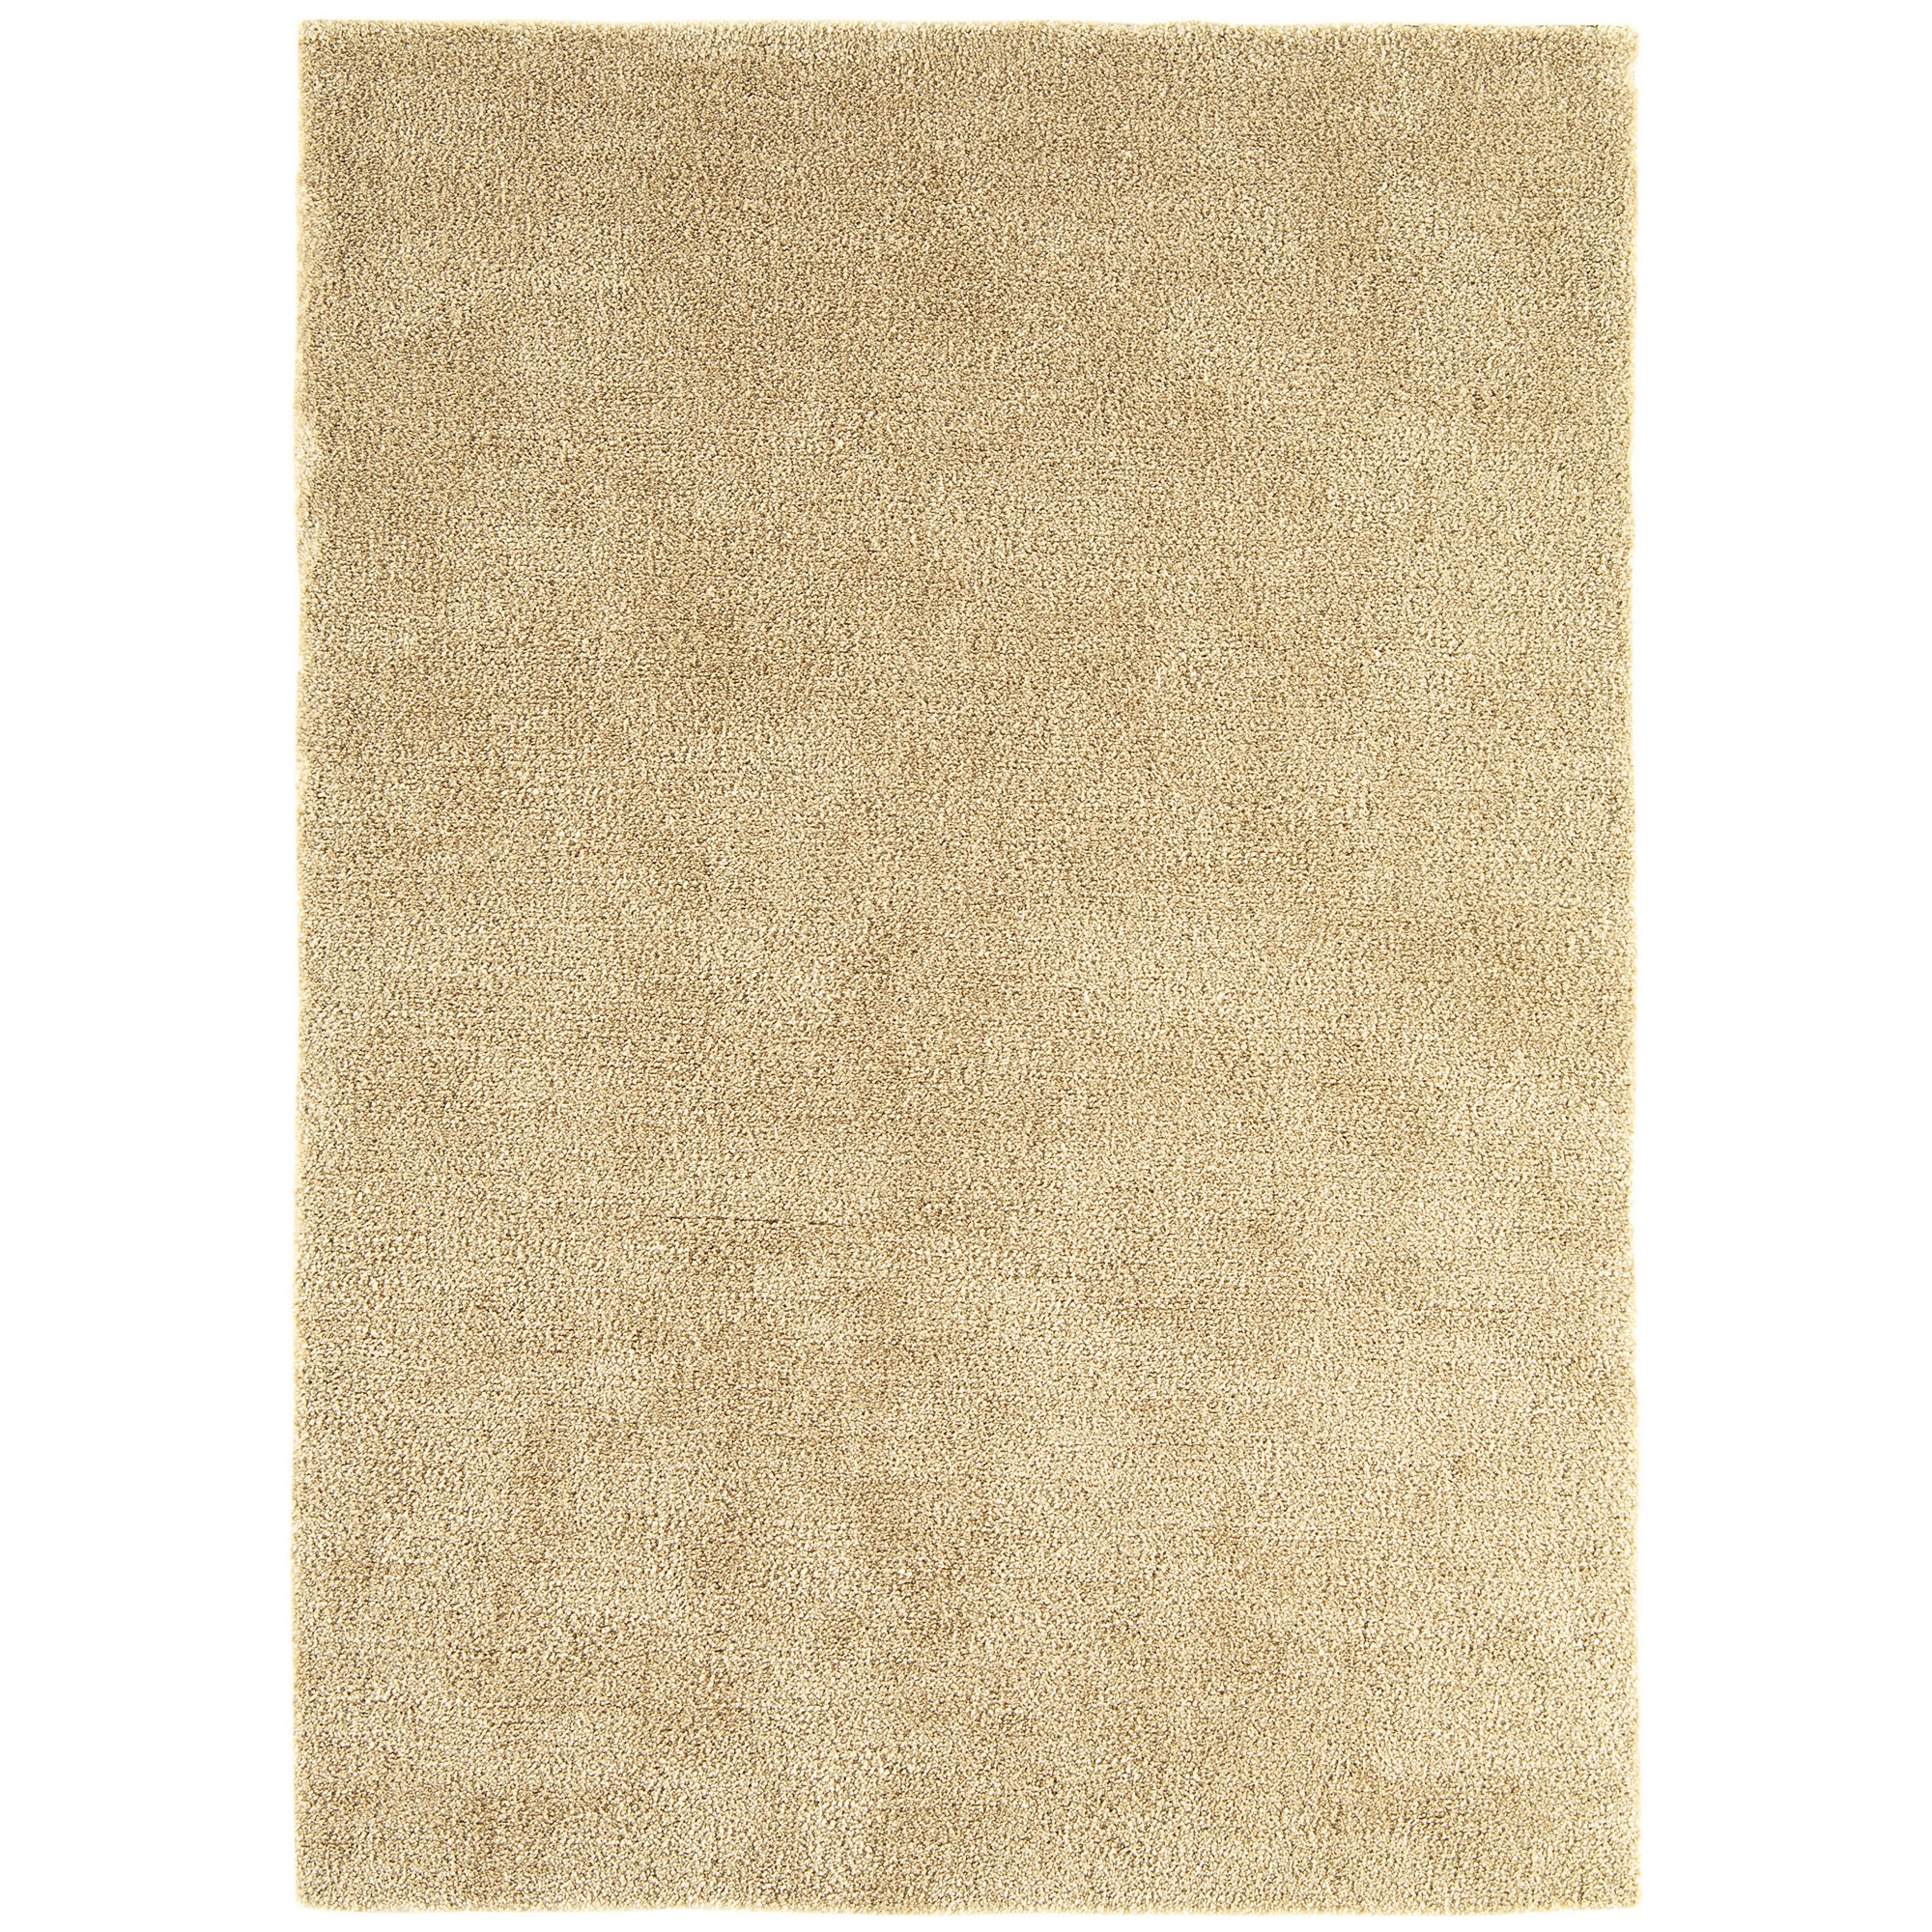 Tula Plain Rugs in Natural